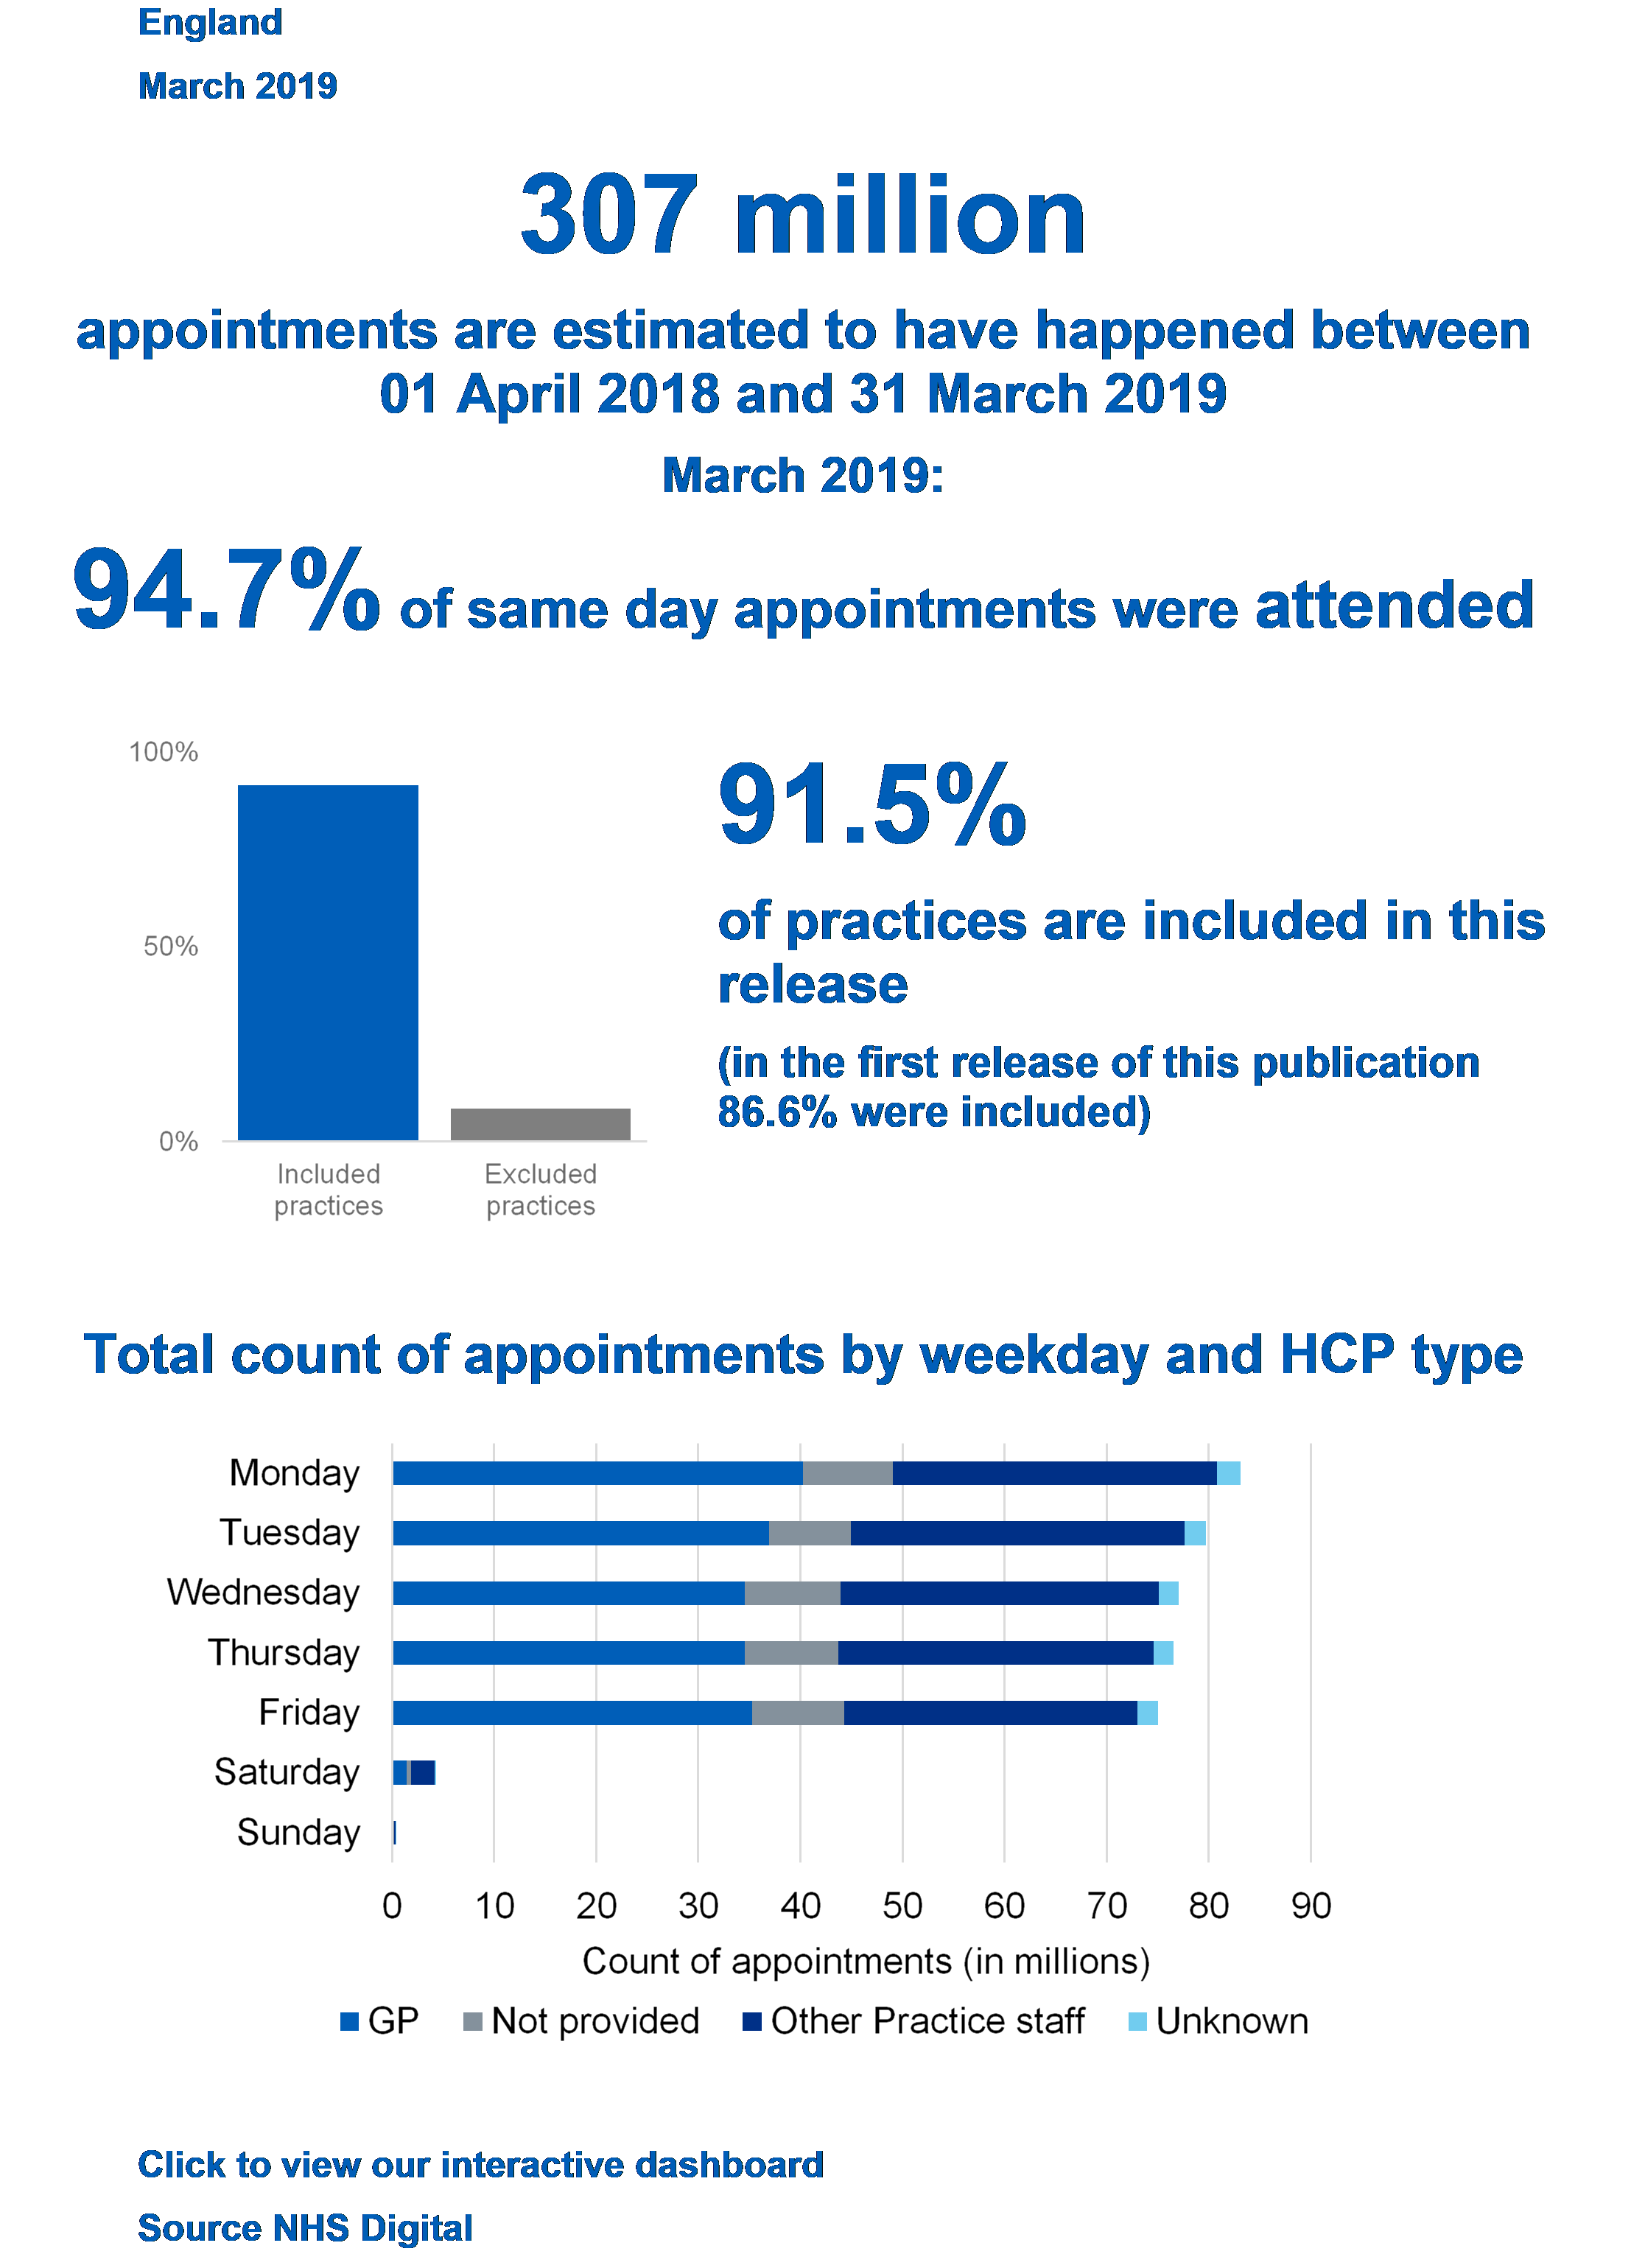 307 million appointments are estimated to have happened between 01 April 2018 and 31 March 2019. March 2019: 94.7% of same day appointments were attended, 91.5% of practices are included in this release (in the first release for November 2017, 86.6% were included), Graph showing Tital count of appointments by weekday and HCP type.